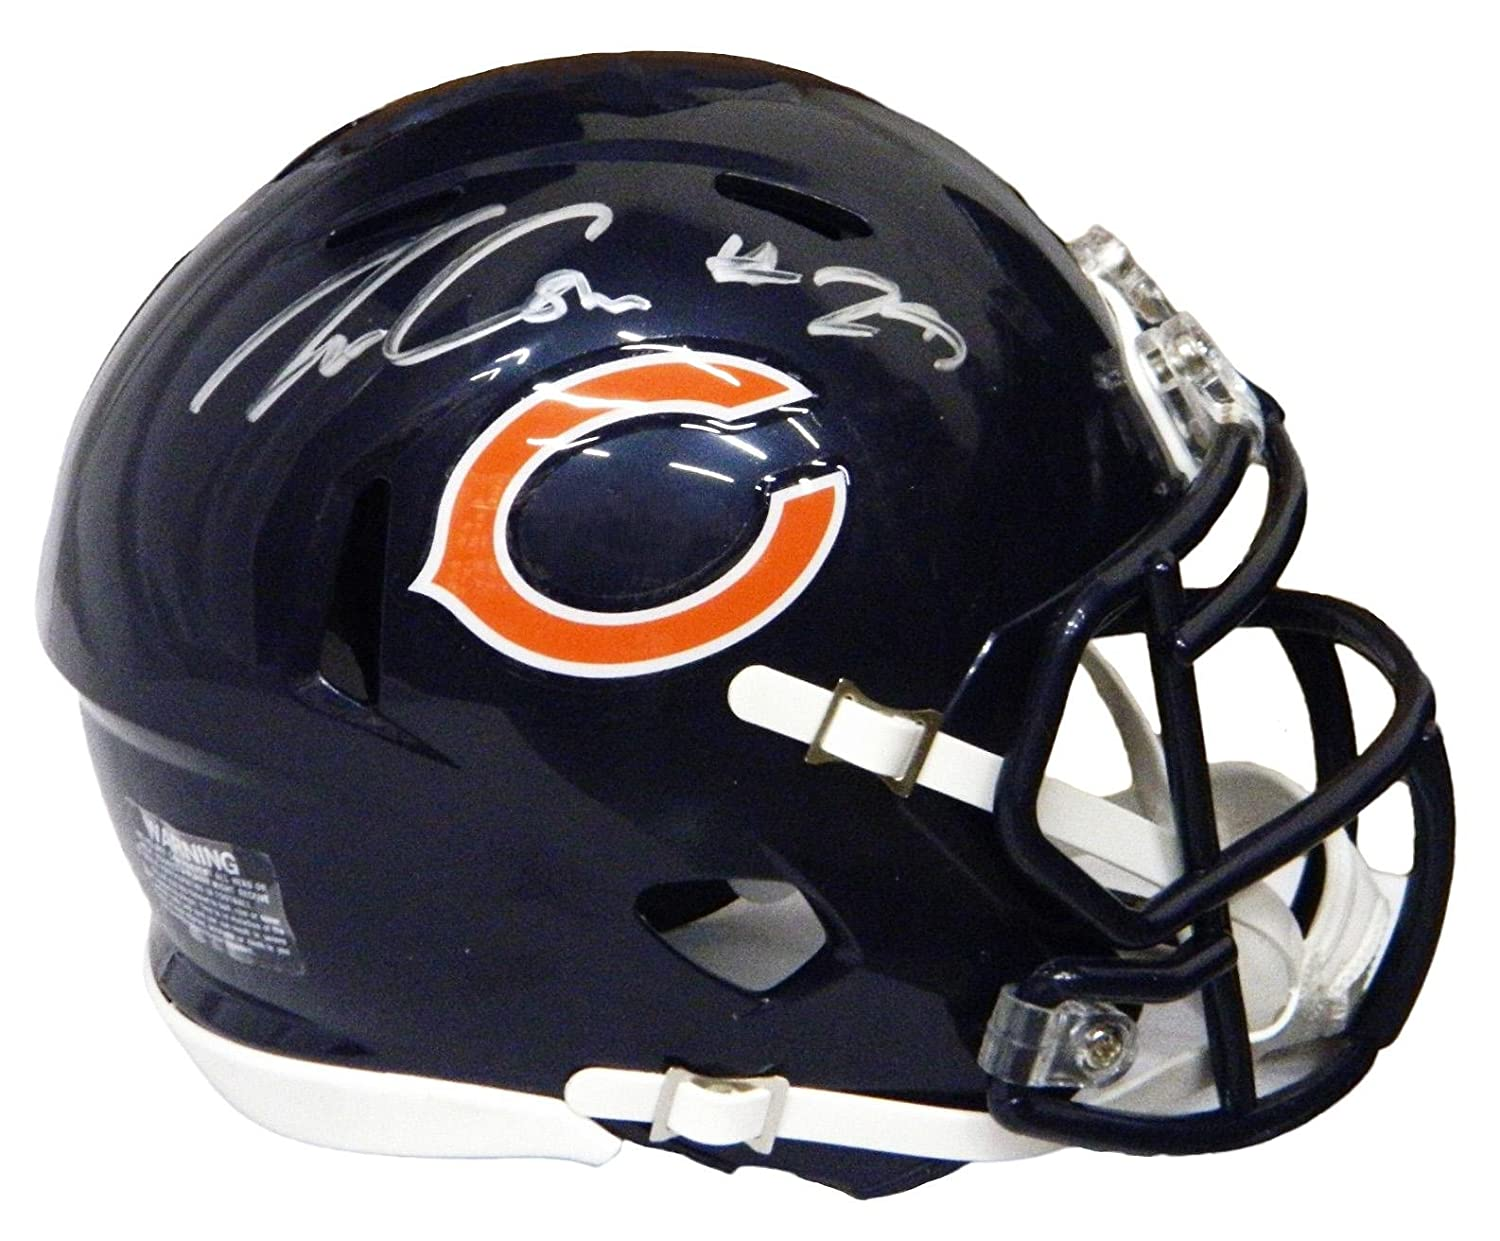 3e234ed54 Amazon.com  Tarik Cohen Autographed Helmet - Riddell Speed Mini -  Autographed NFL Mini Helmets  Sports Collectibles